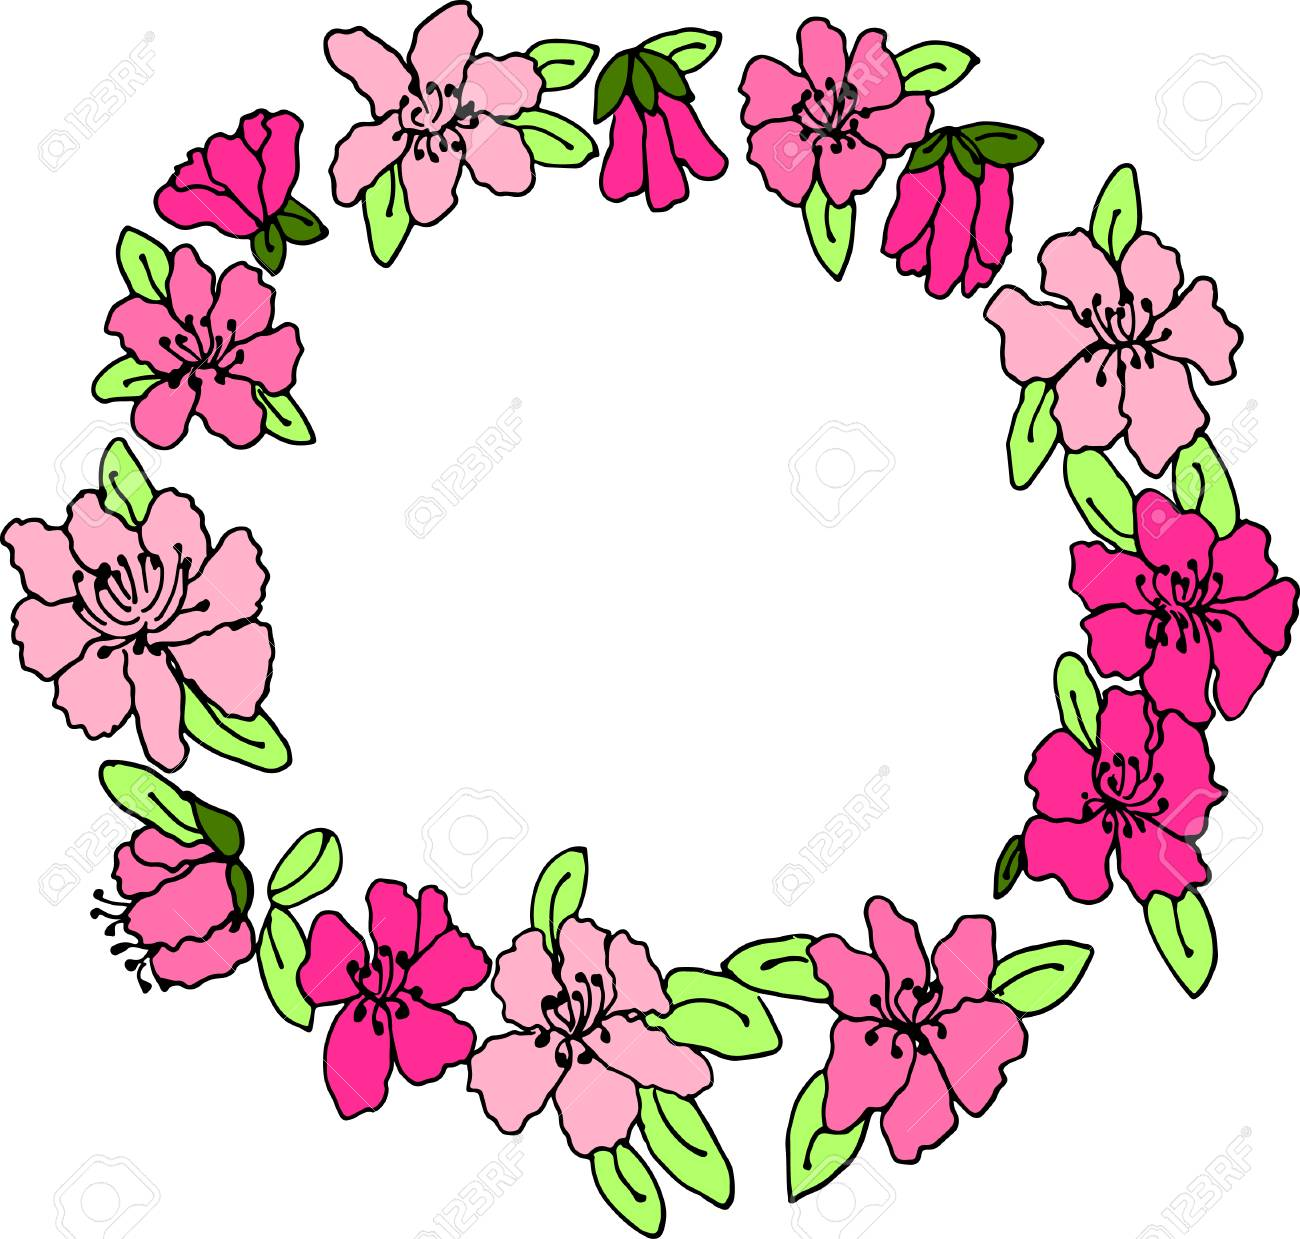 Bright pink hand drawn floral wreath, floral wreath clip art.